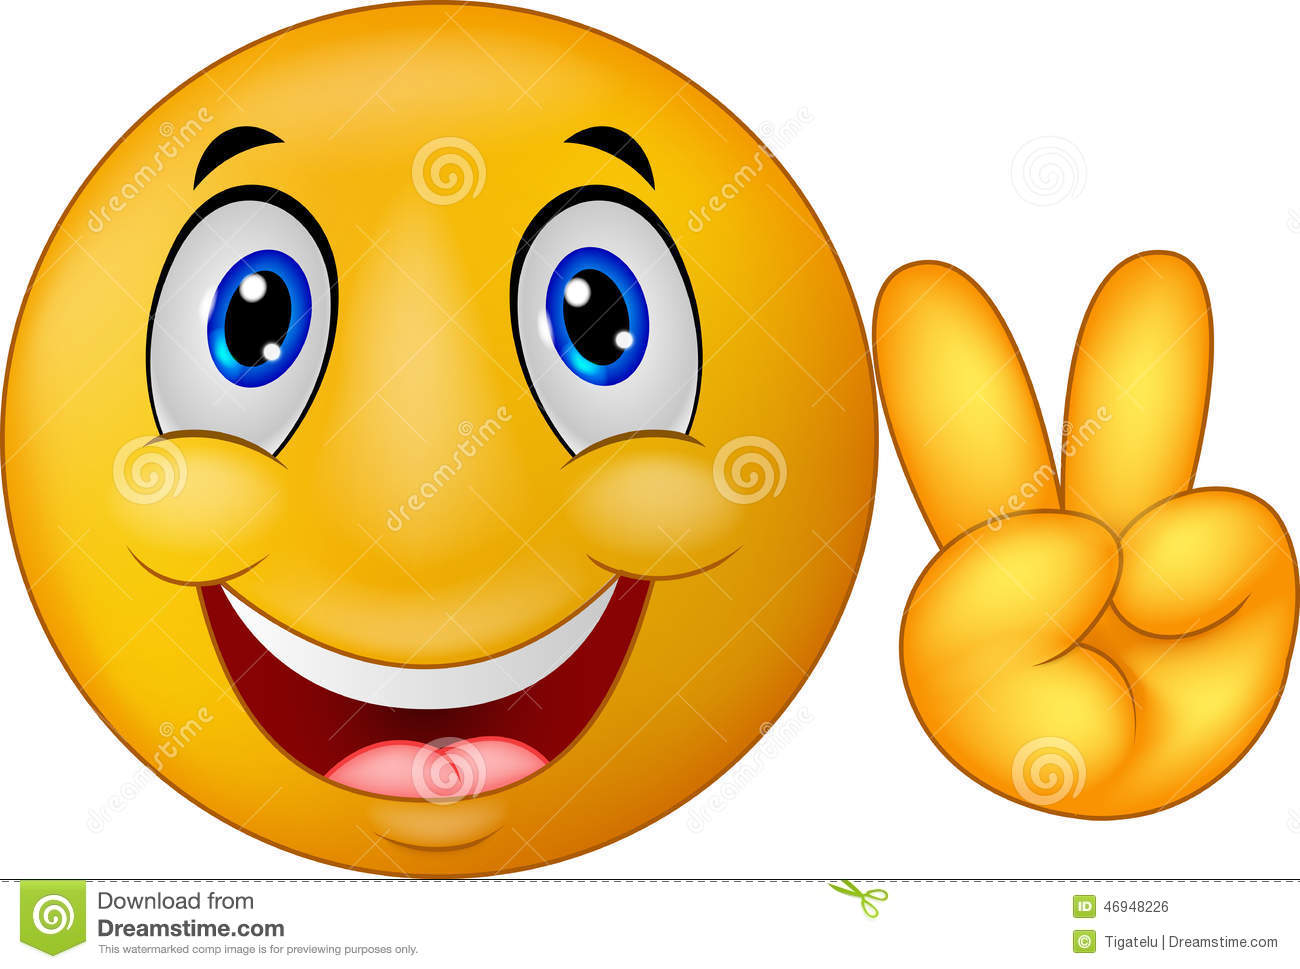 Cool Smiley Face Thumbs Up Cartoon Smiley Emotico...